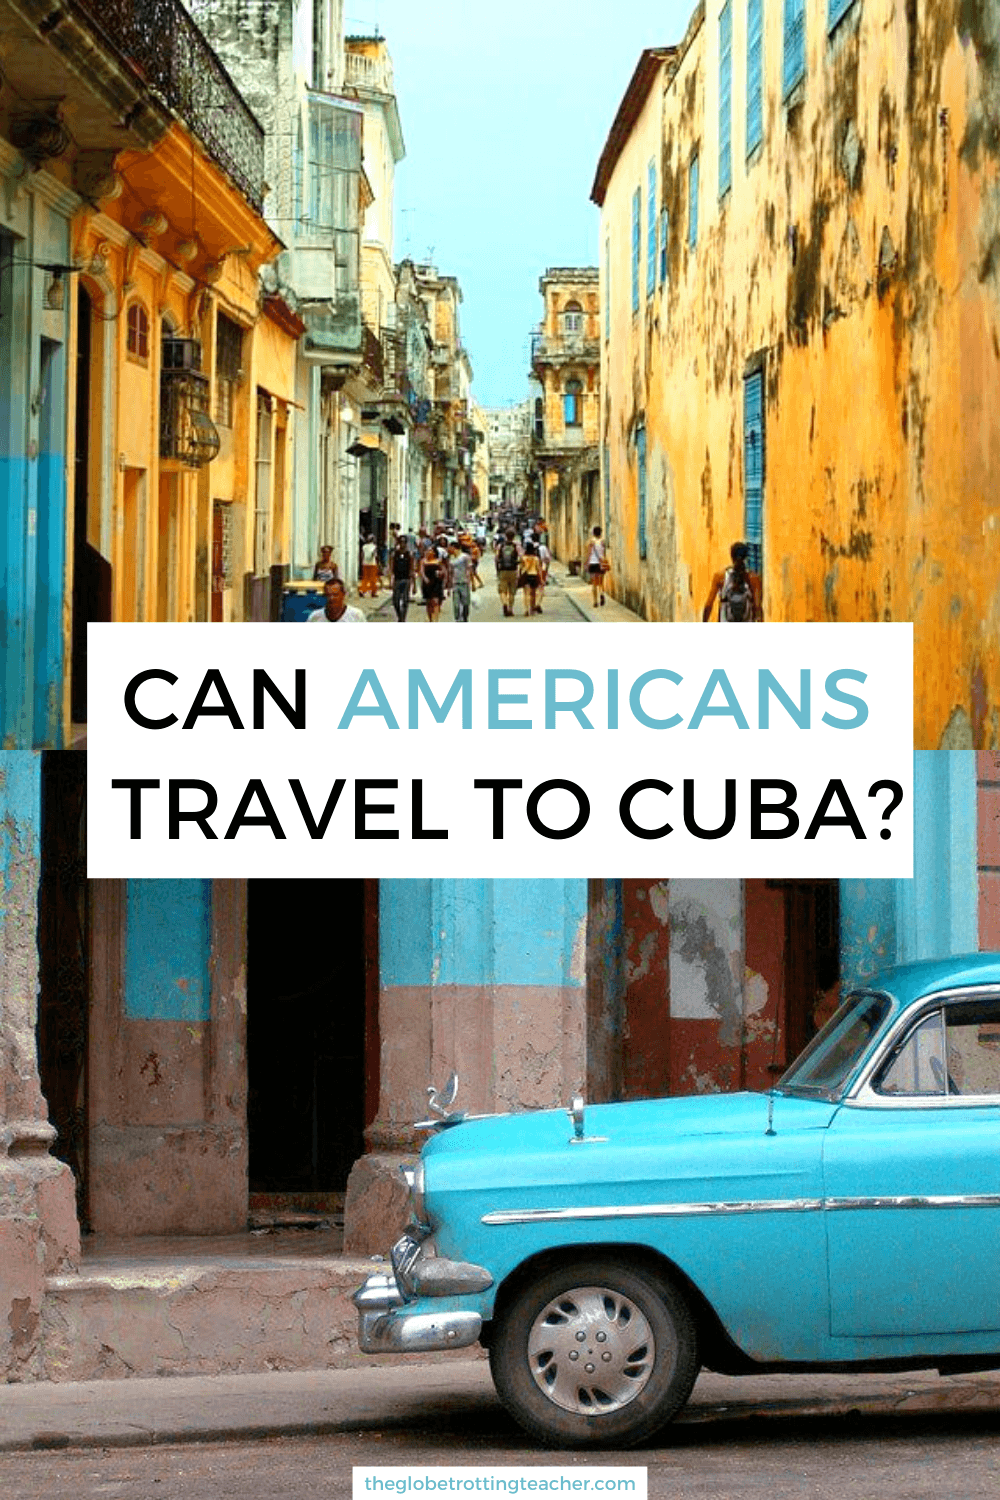 Can Americans Travel to Cuba? - The Globetrotting Teacher